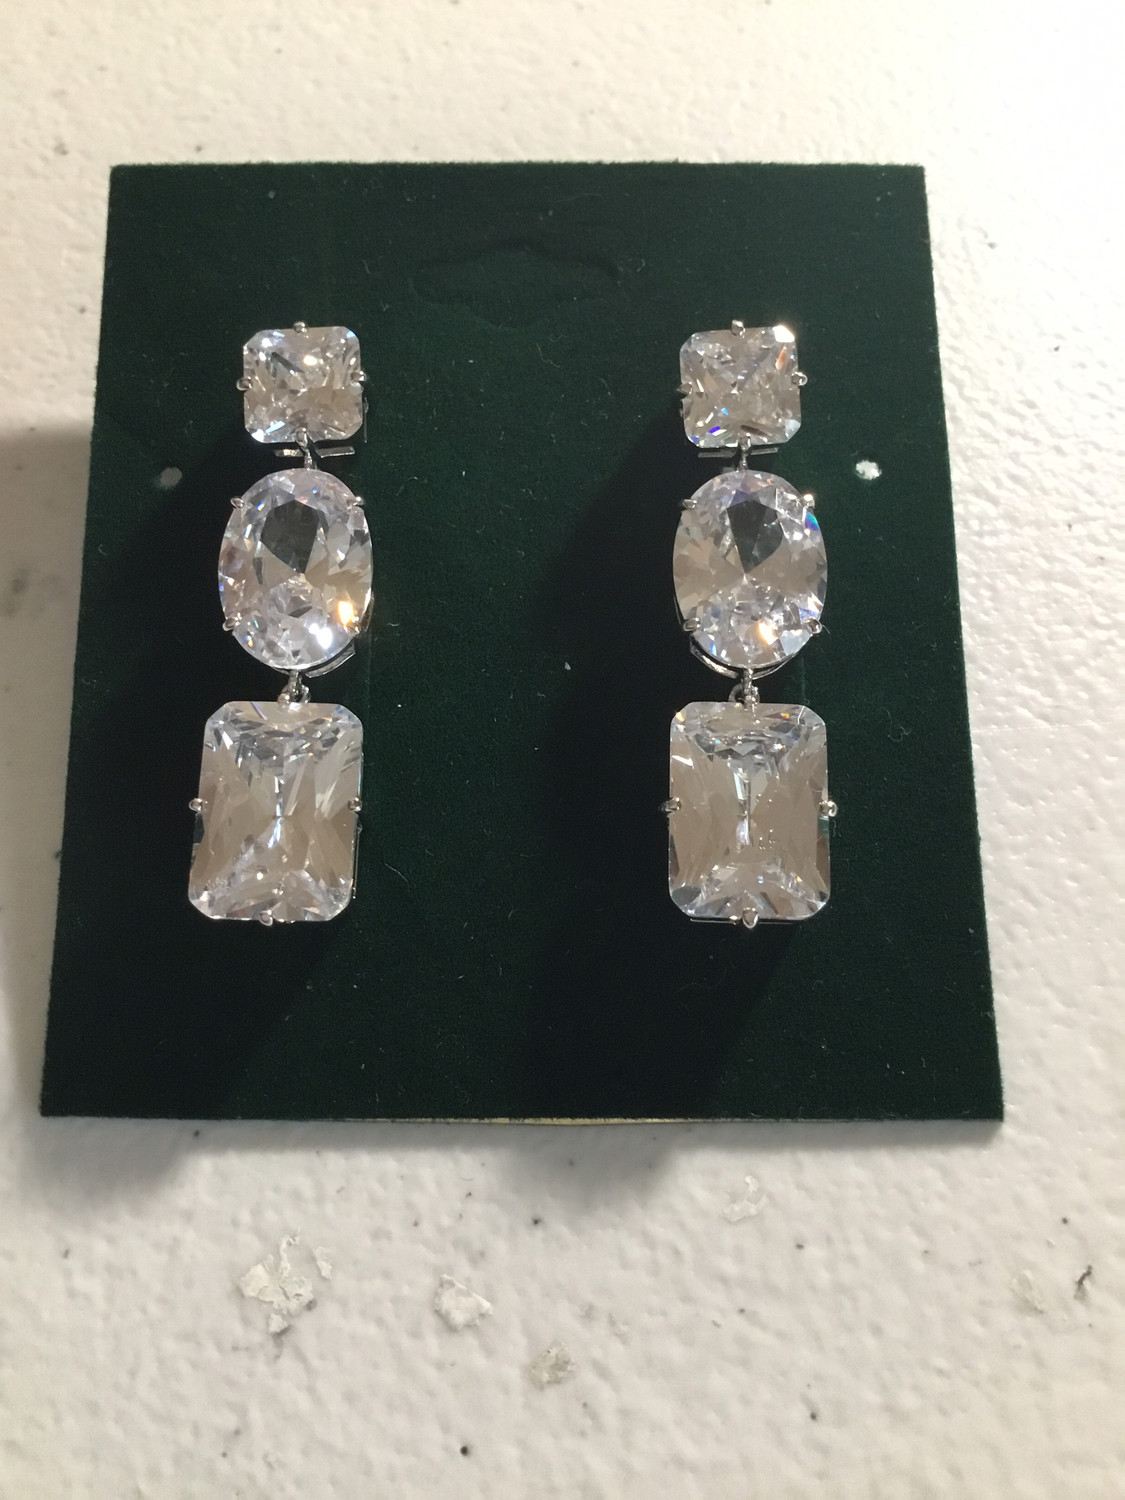 Three Oval, Square Crystal Earrings